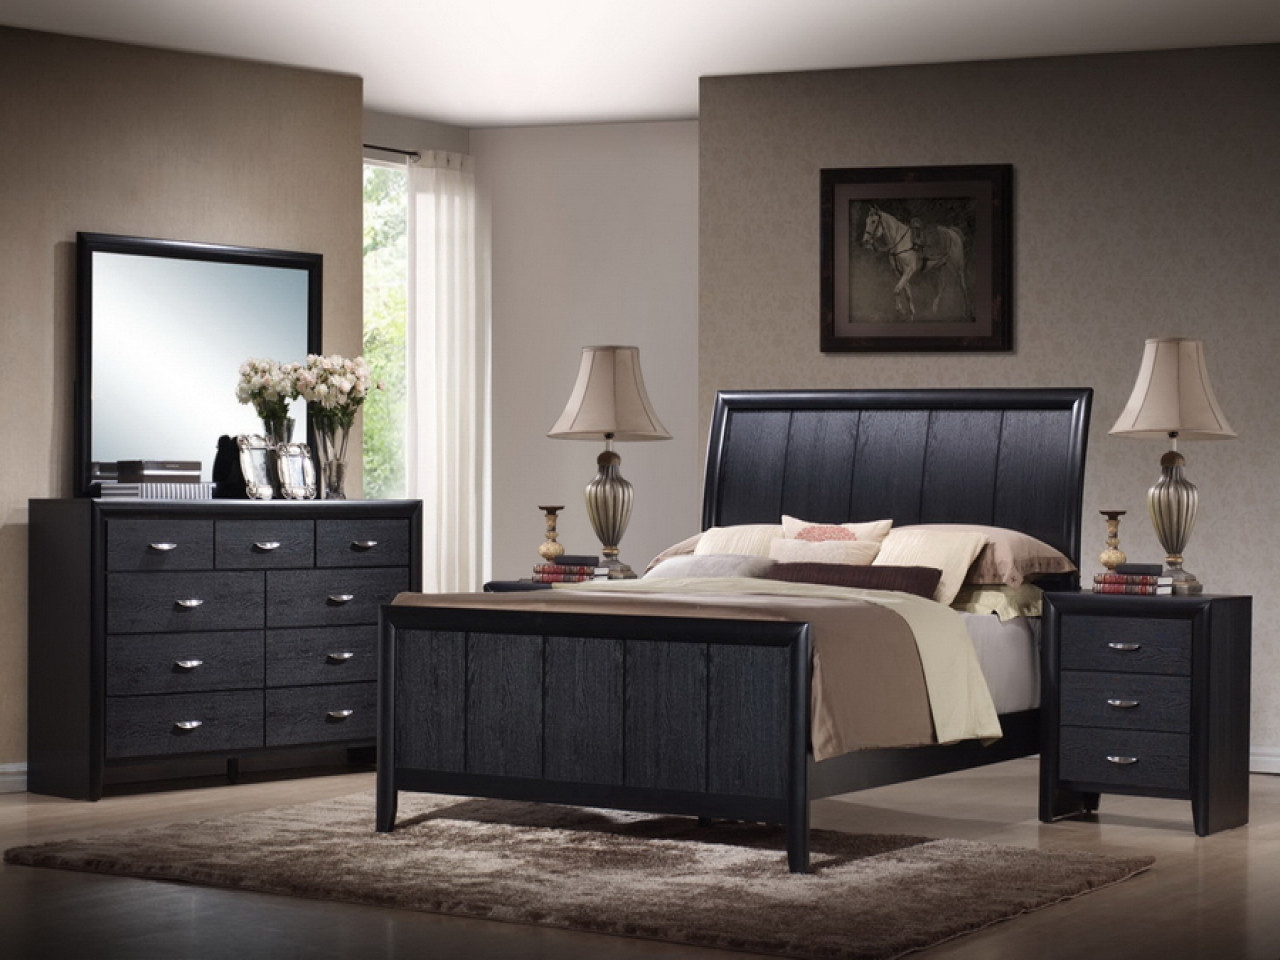 Best ideas about Cheap Queen Bedroom Sets . Save or Pin Nice bedroom sets cheap bedroom decorating ideas bedroom Now.